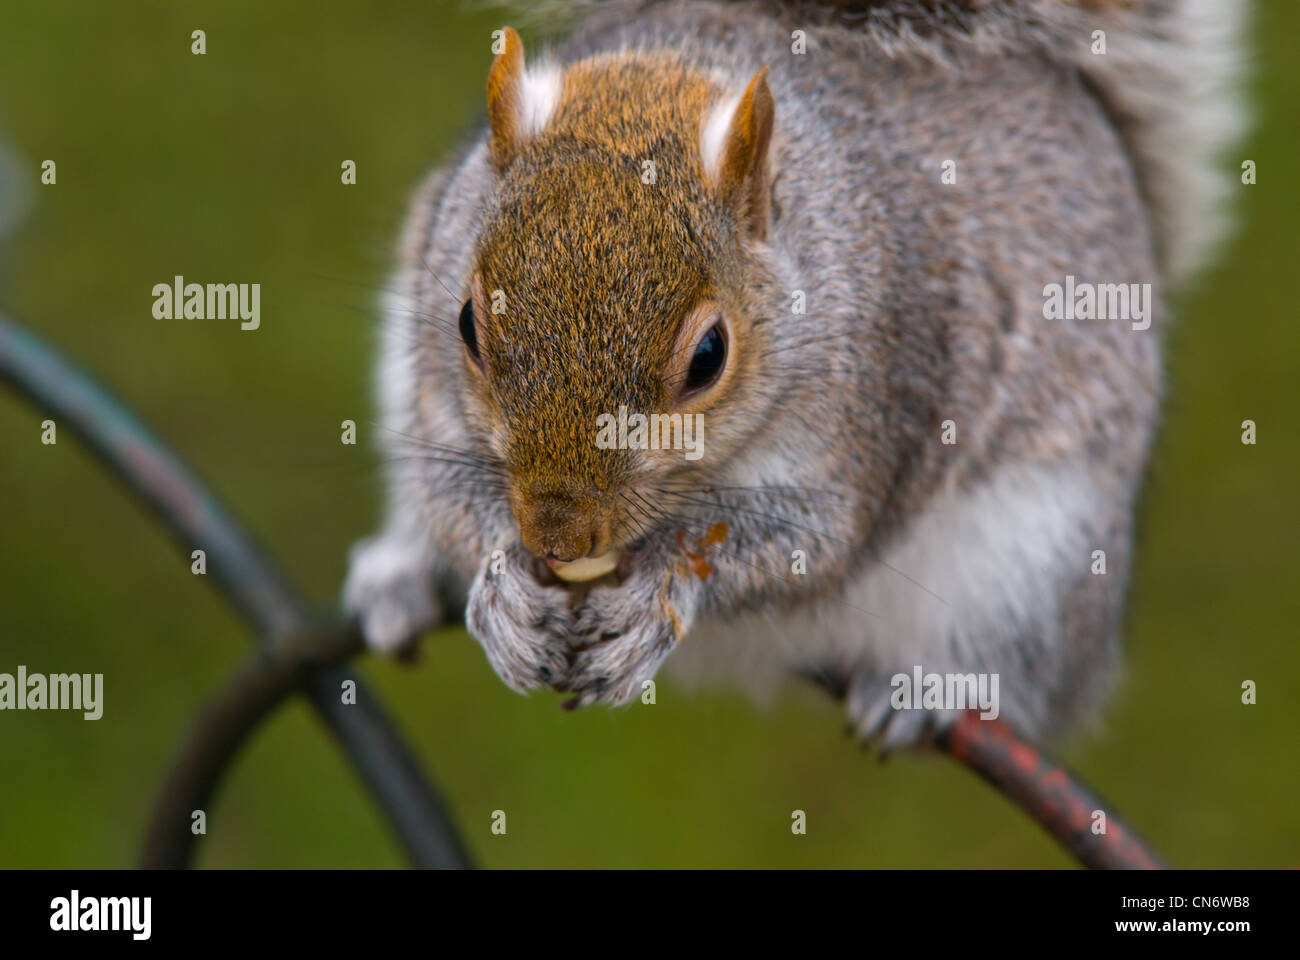 The eastern gray squirrel - Stock Image